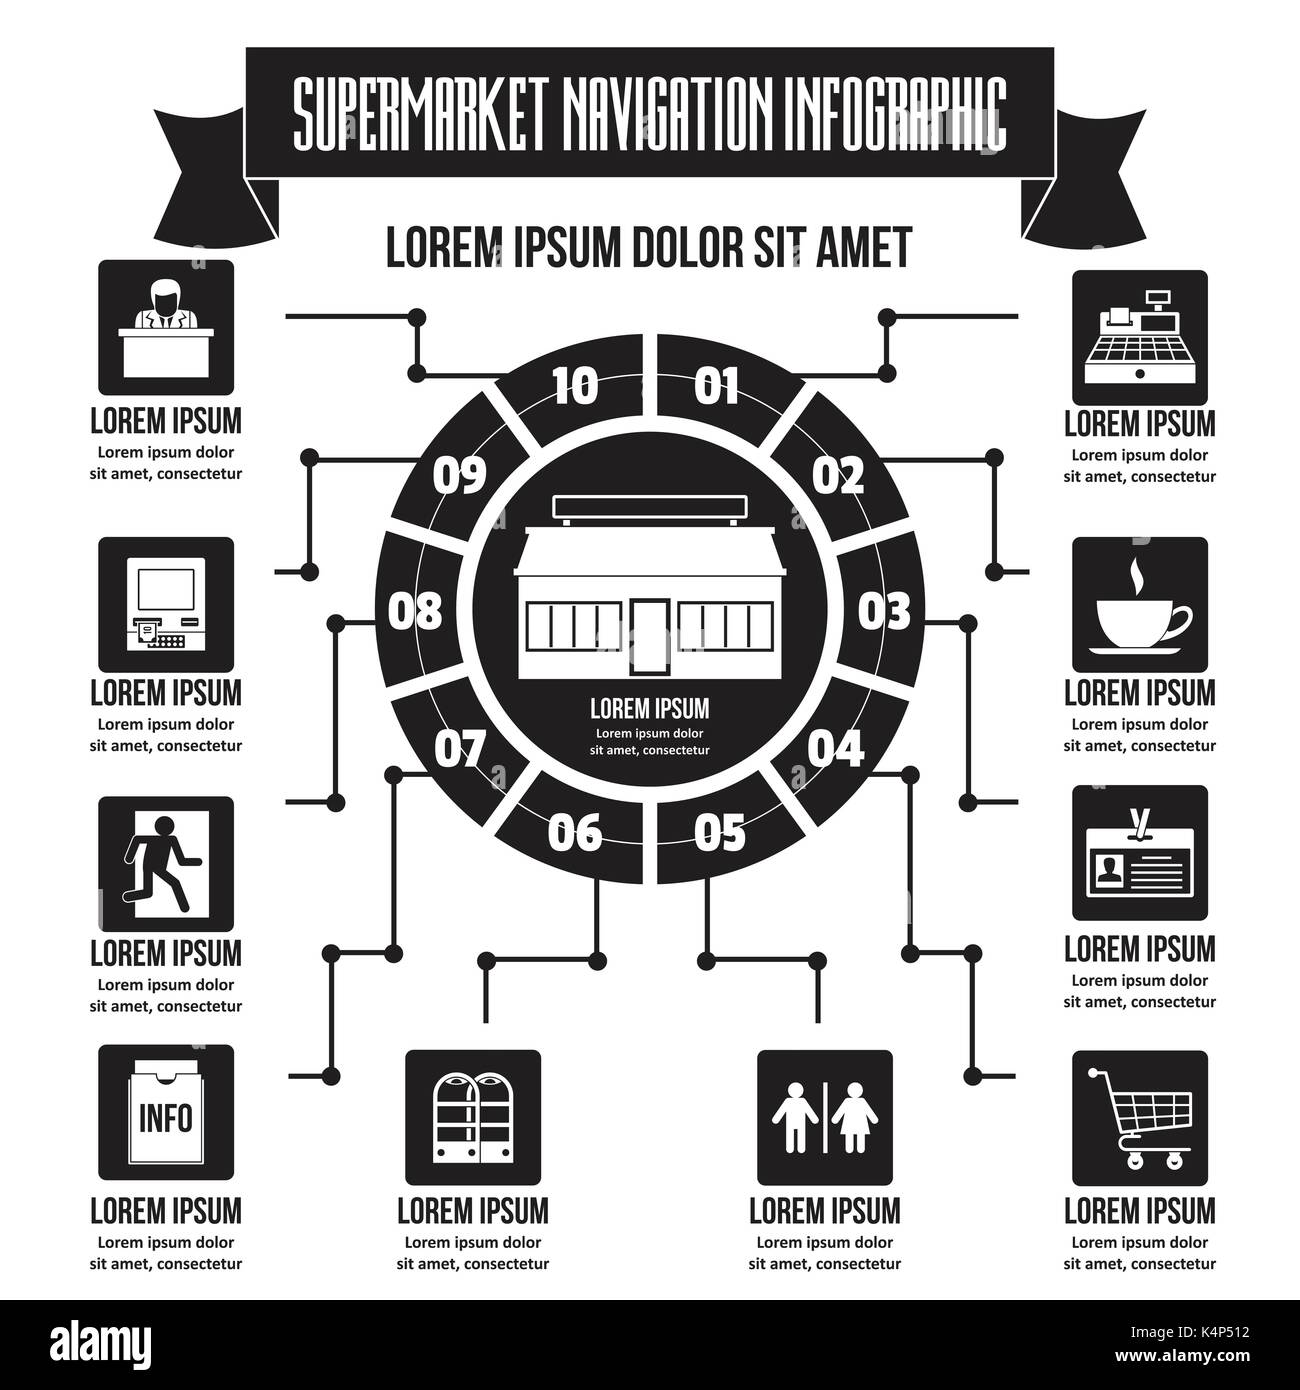 Supermarket navigation infographic, simple style - Stock Image